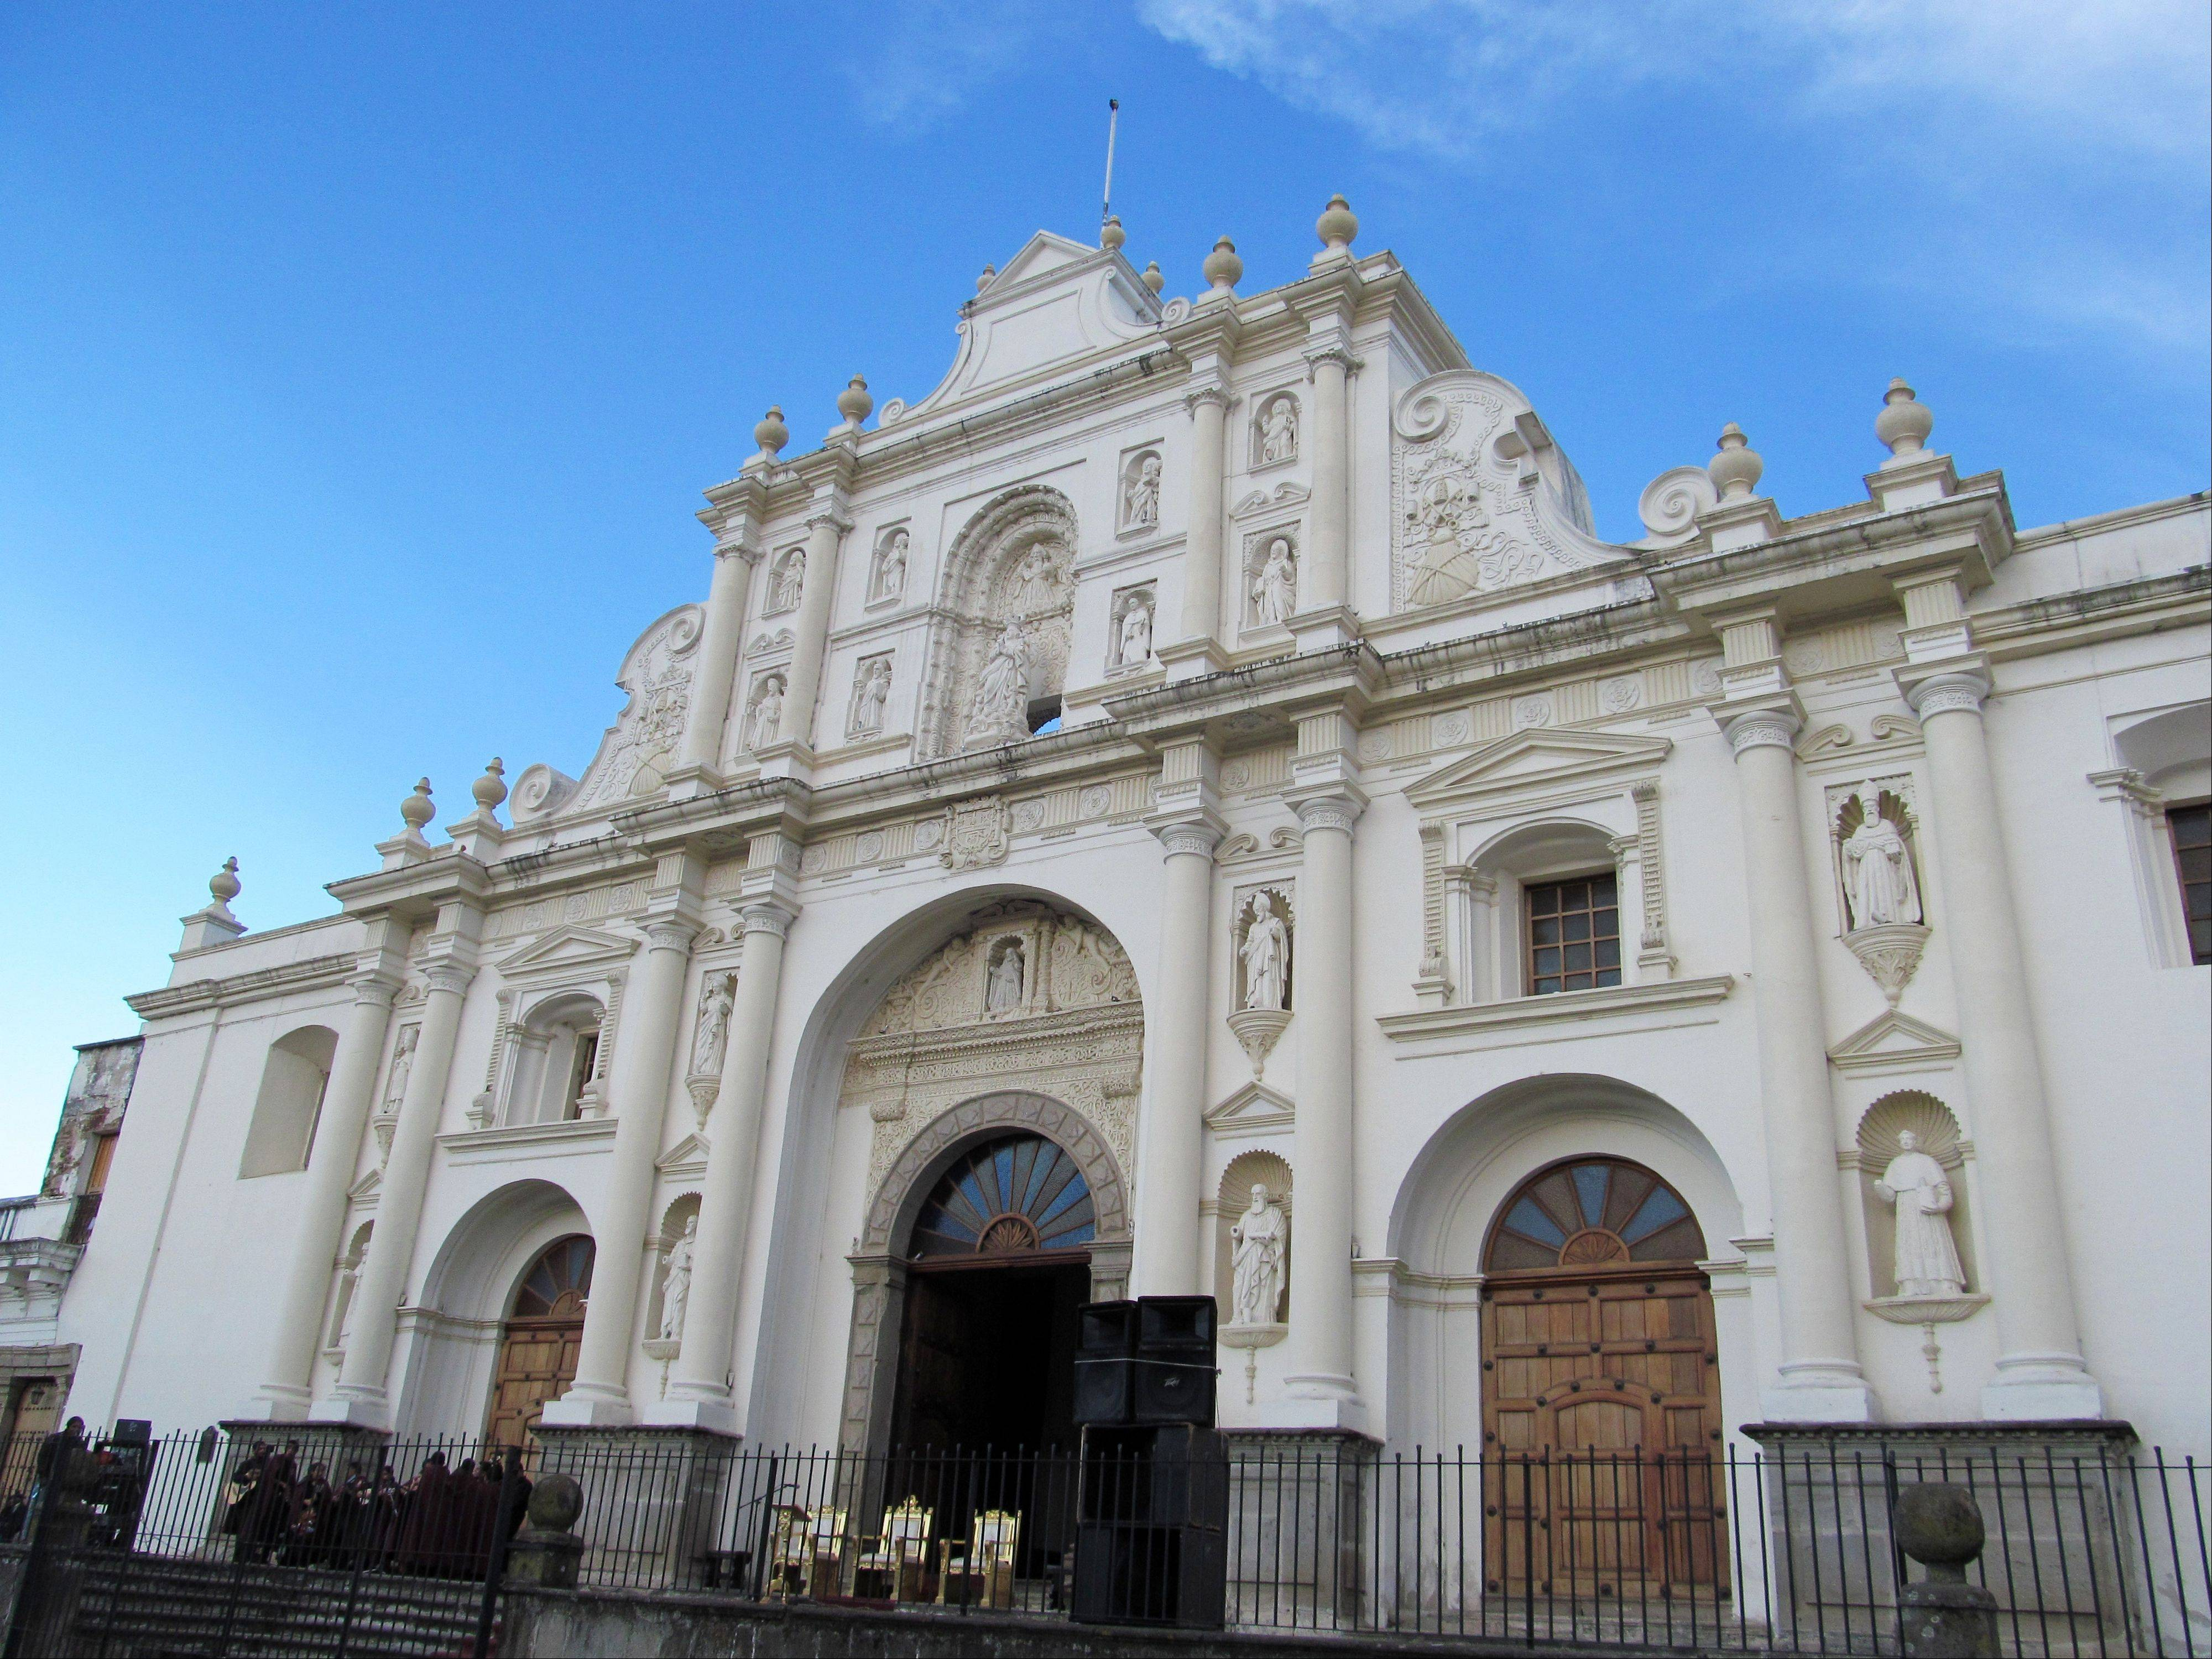 Catedral de Santiago on the main square in Antigua, Guatemala, the country's former capital. The church is considered a symbol of the city, which boasts one of the best collections of Spanish colonial buildings in the Americas and is a popular destination for tourists.